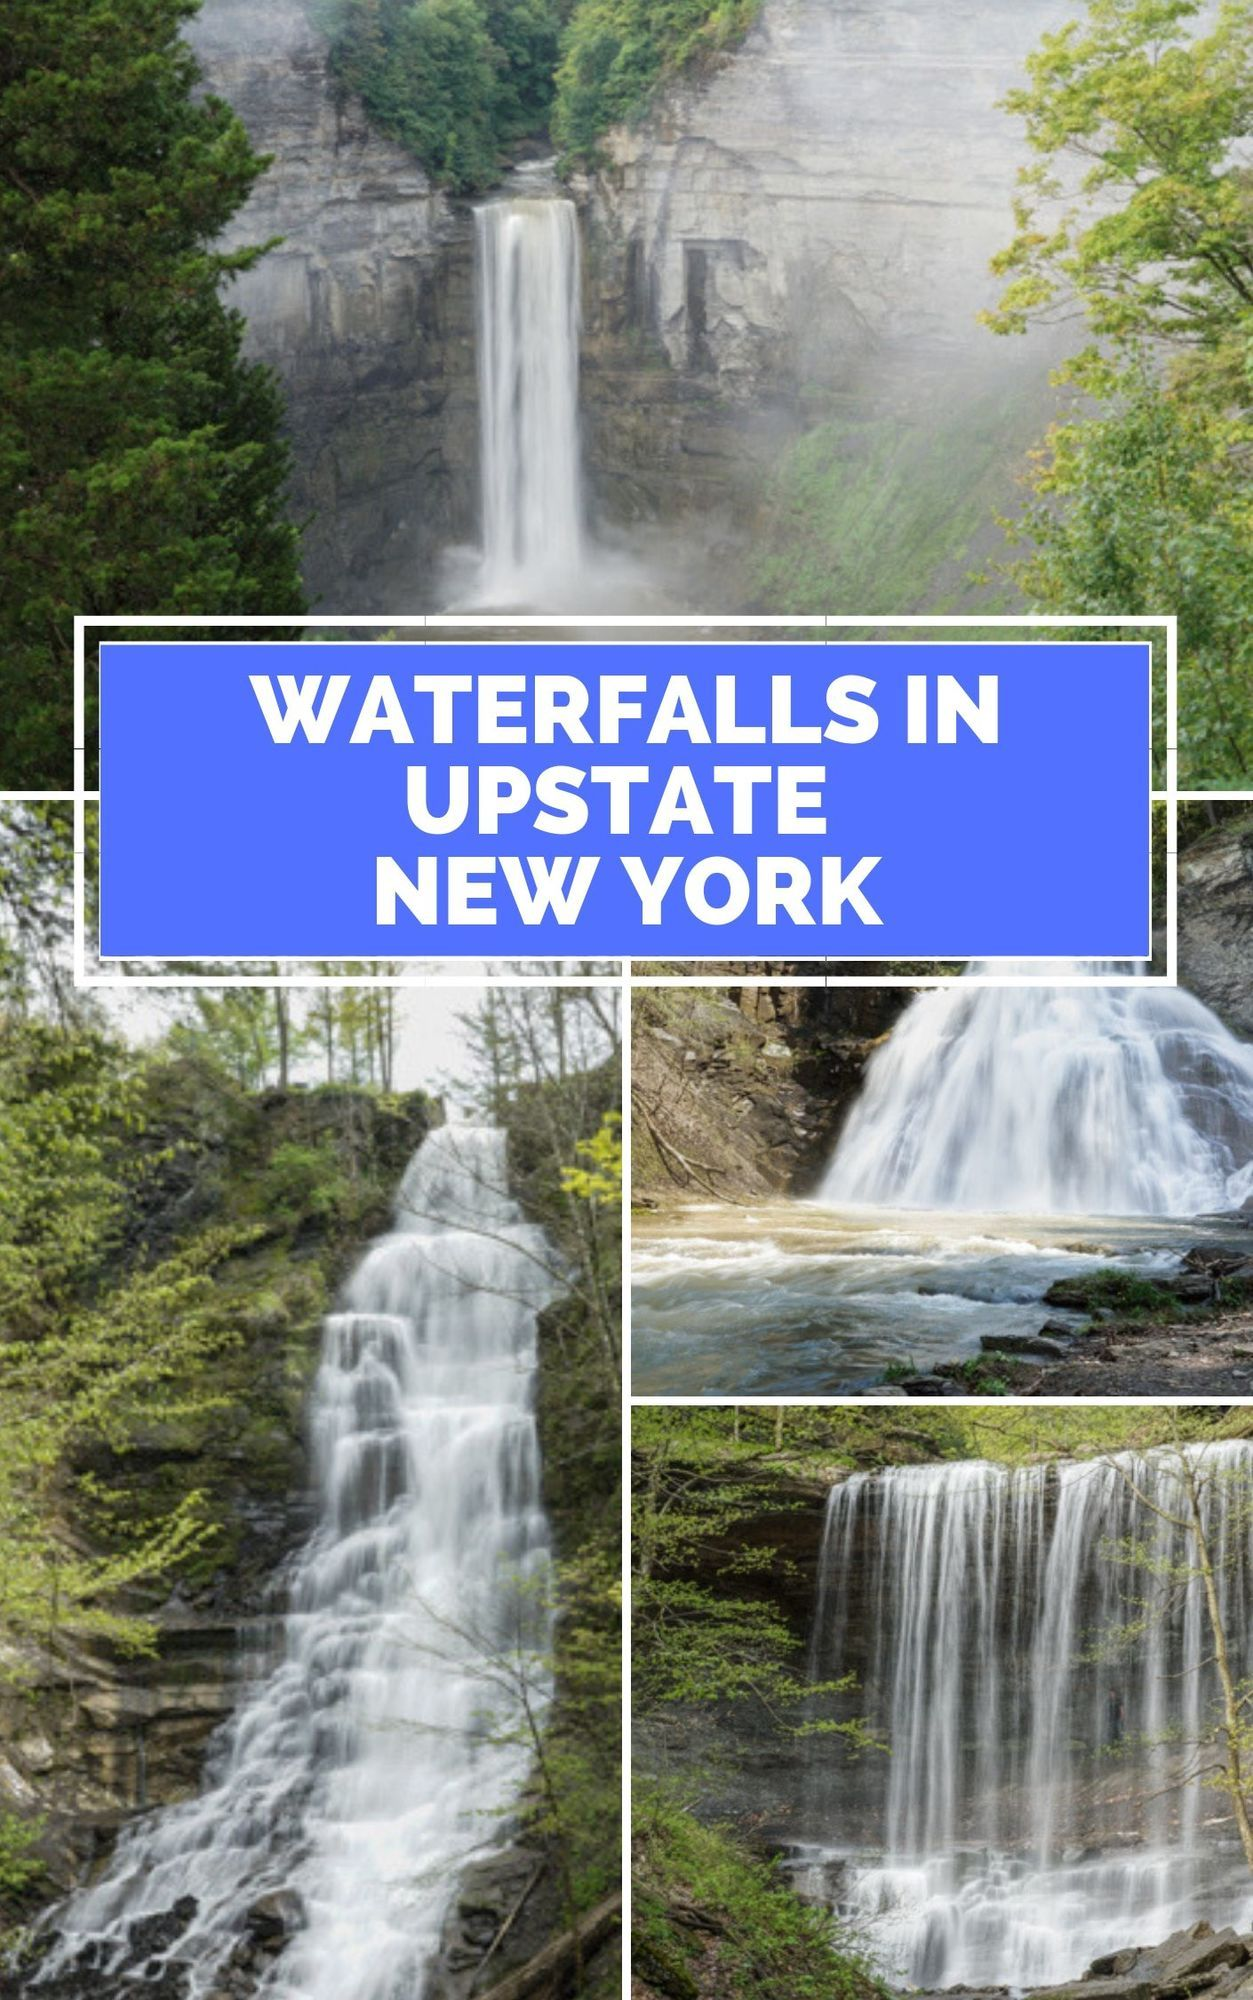 10 Awesome New York Waterfalls to Check Out That Aren't Niagara Falls #autumninnewyork